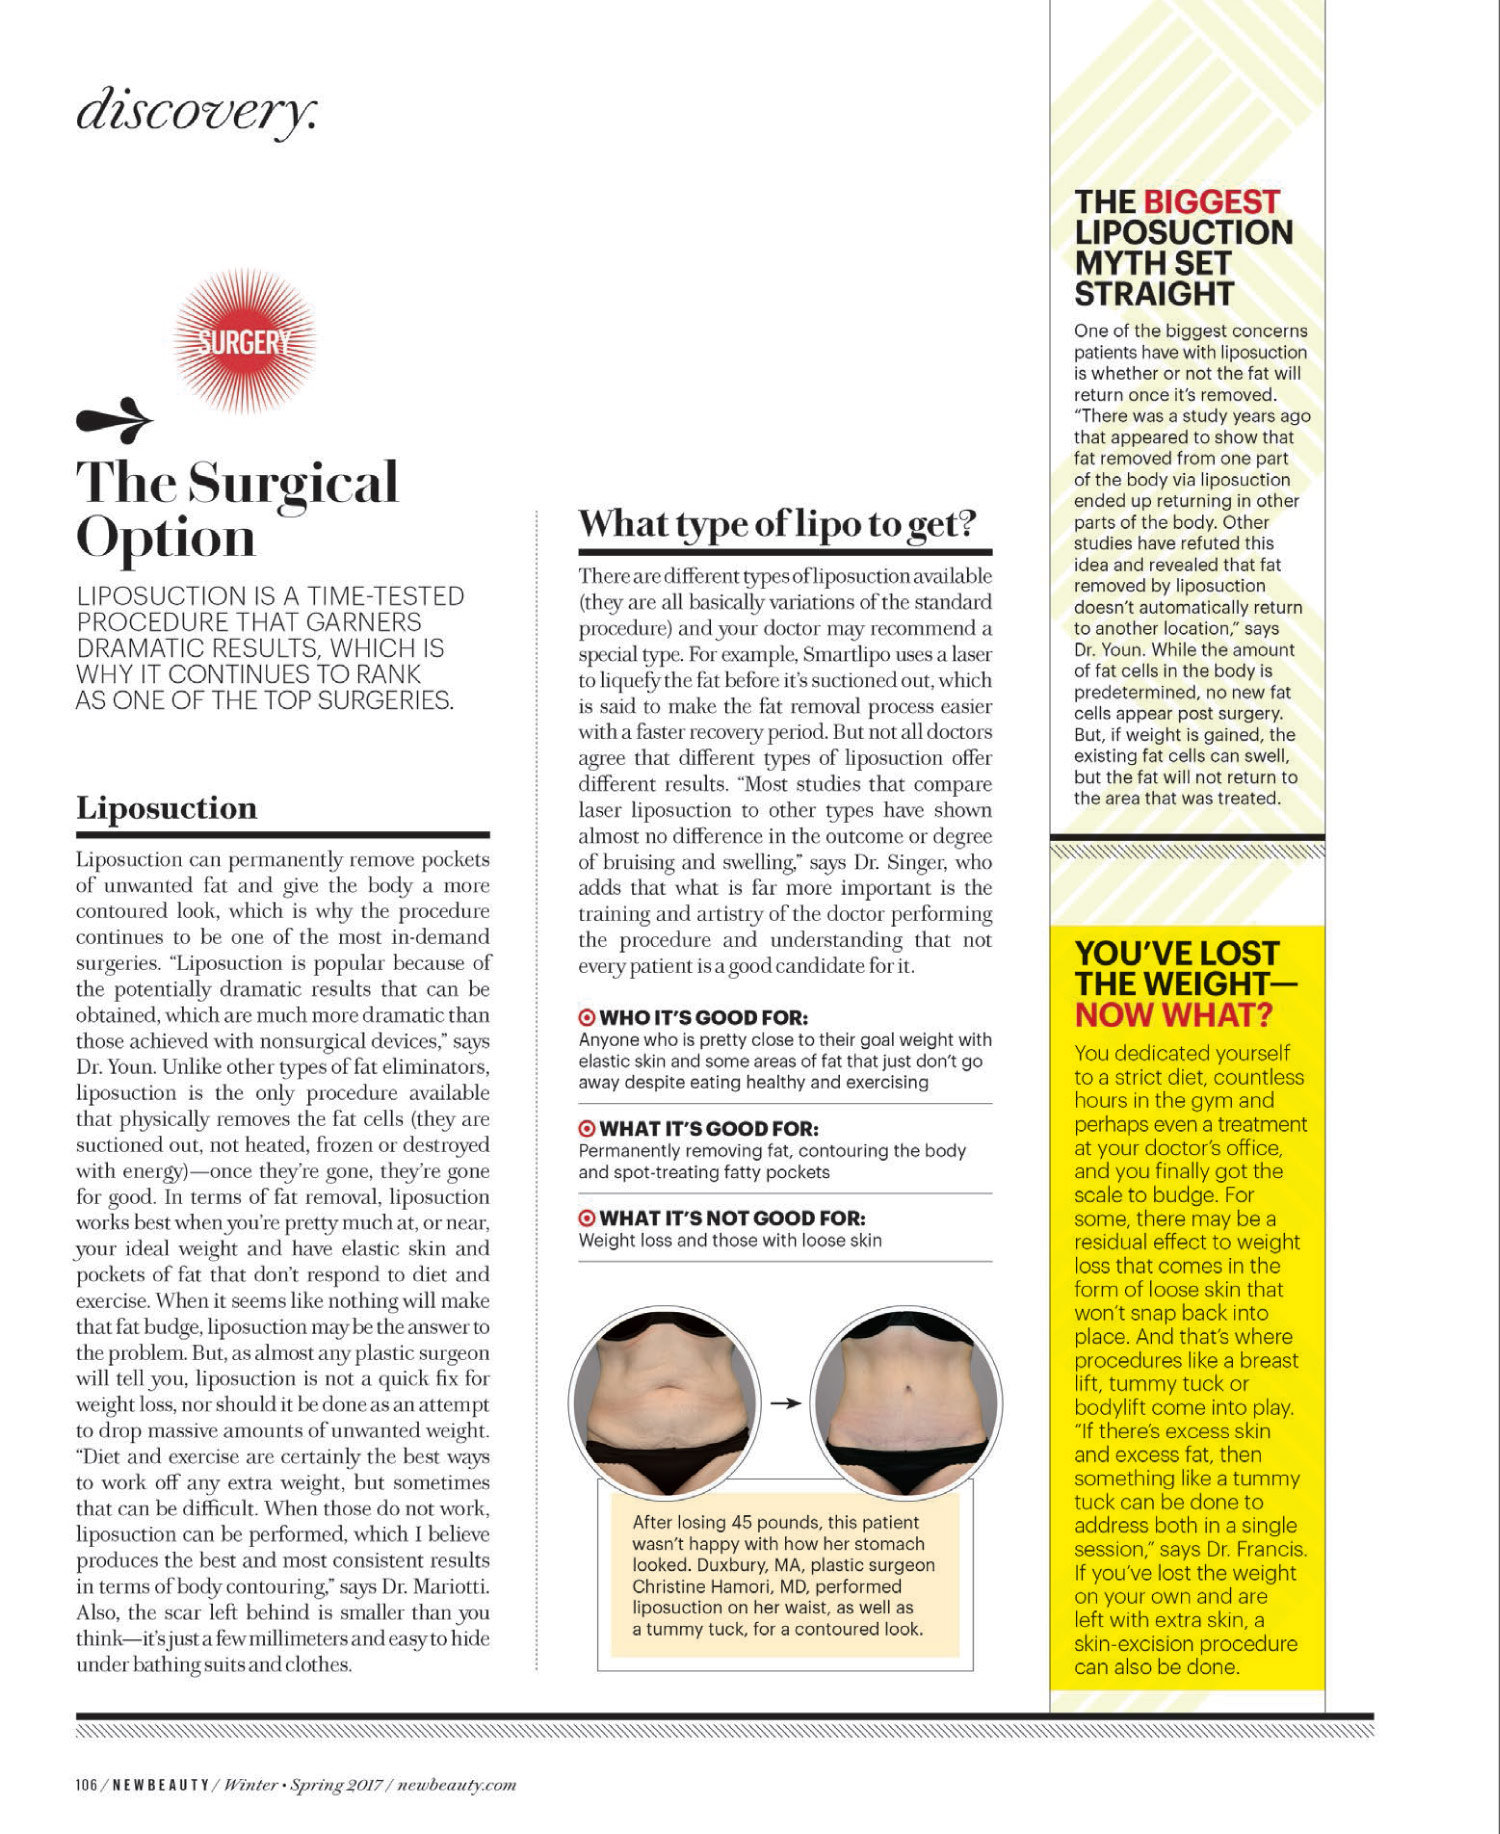 Dr. Francis is featured in this article of New Beauty January issue 5